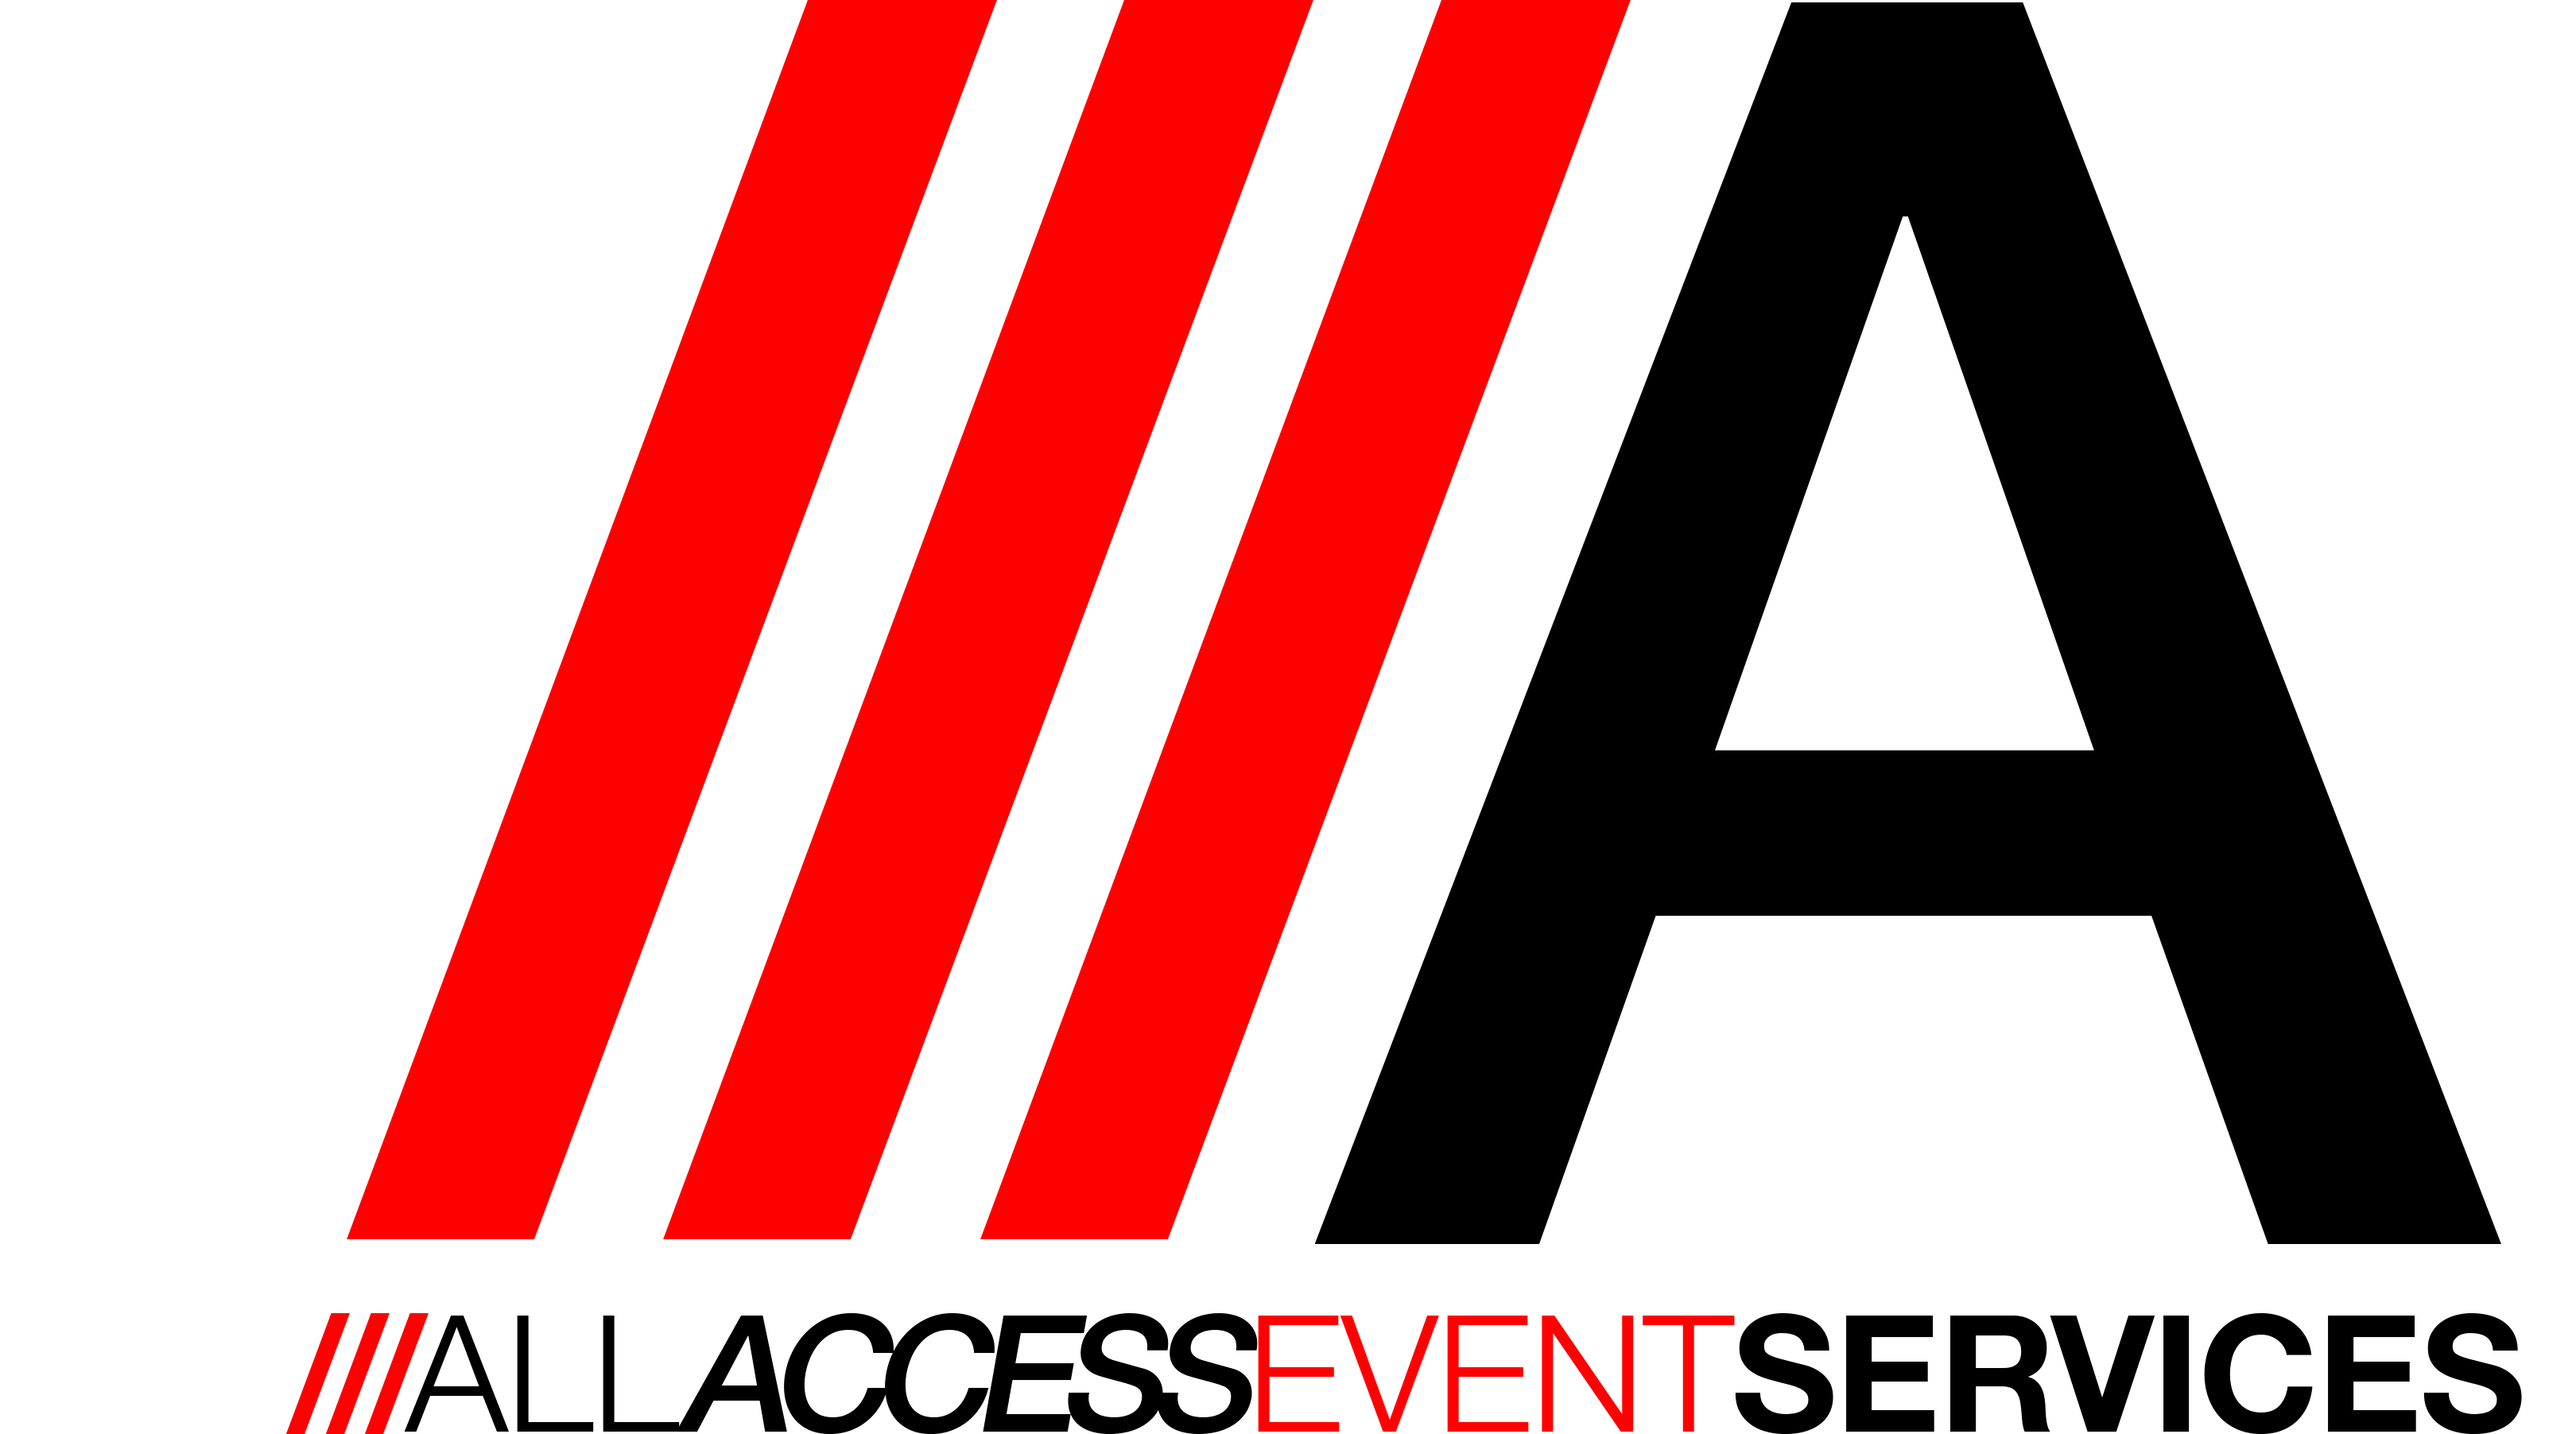 All Access Event Services